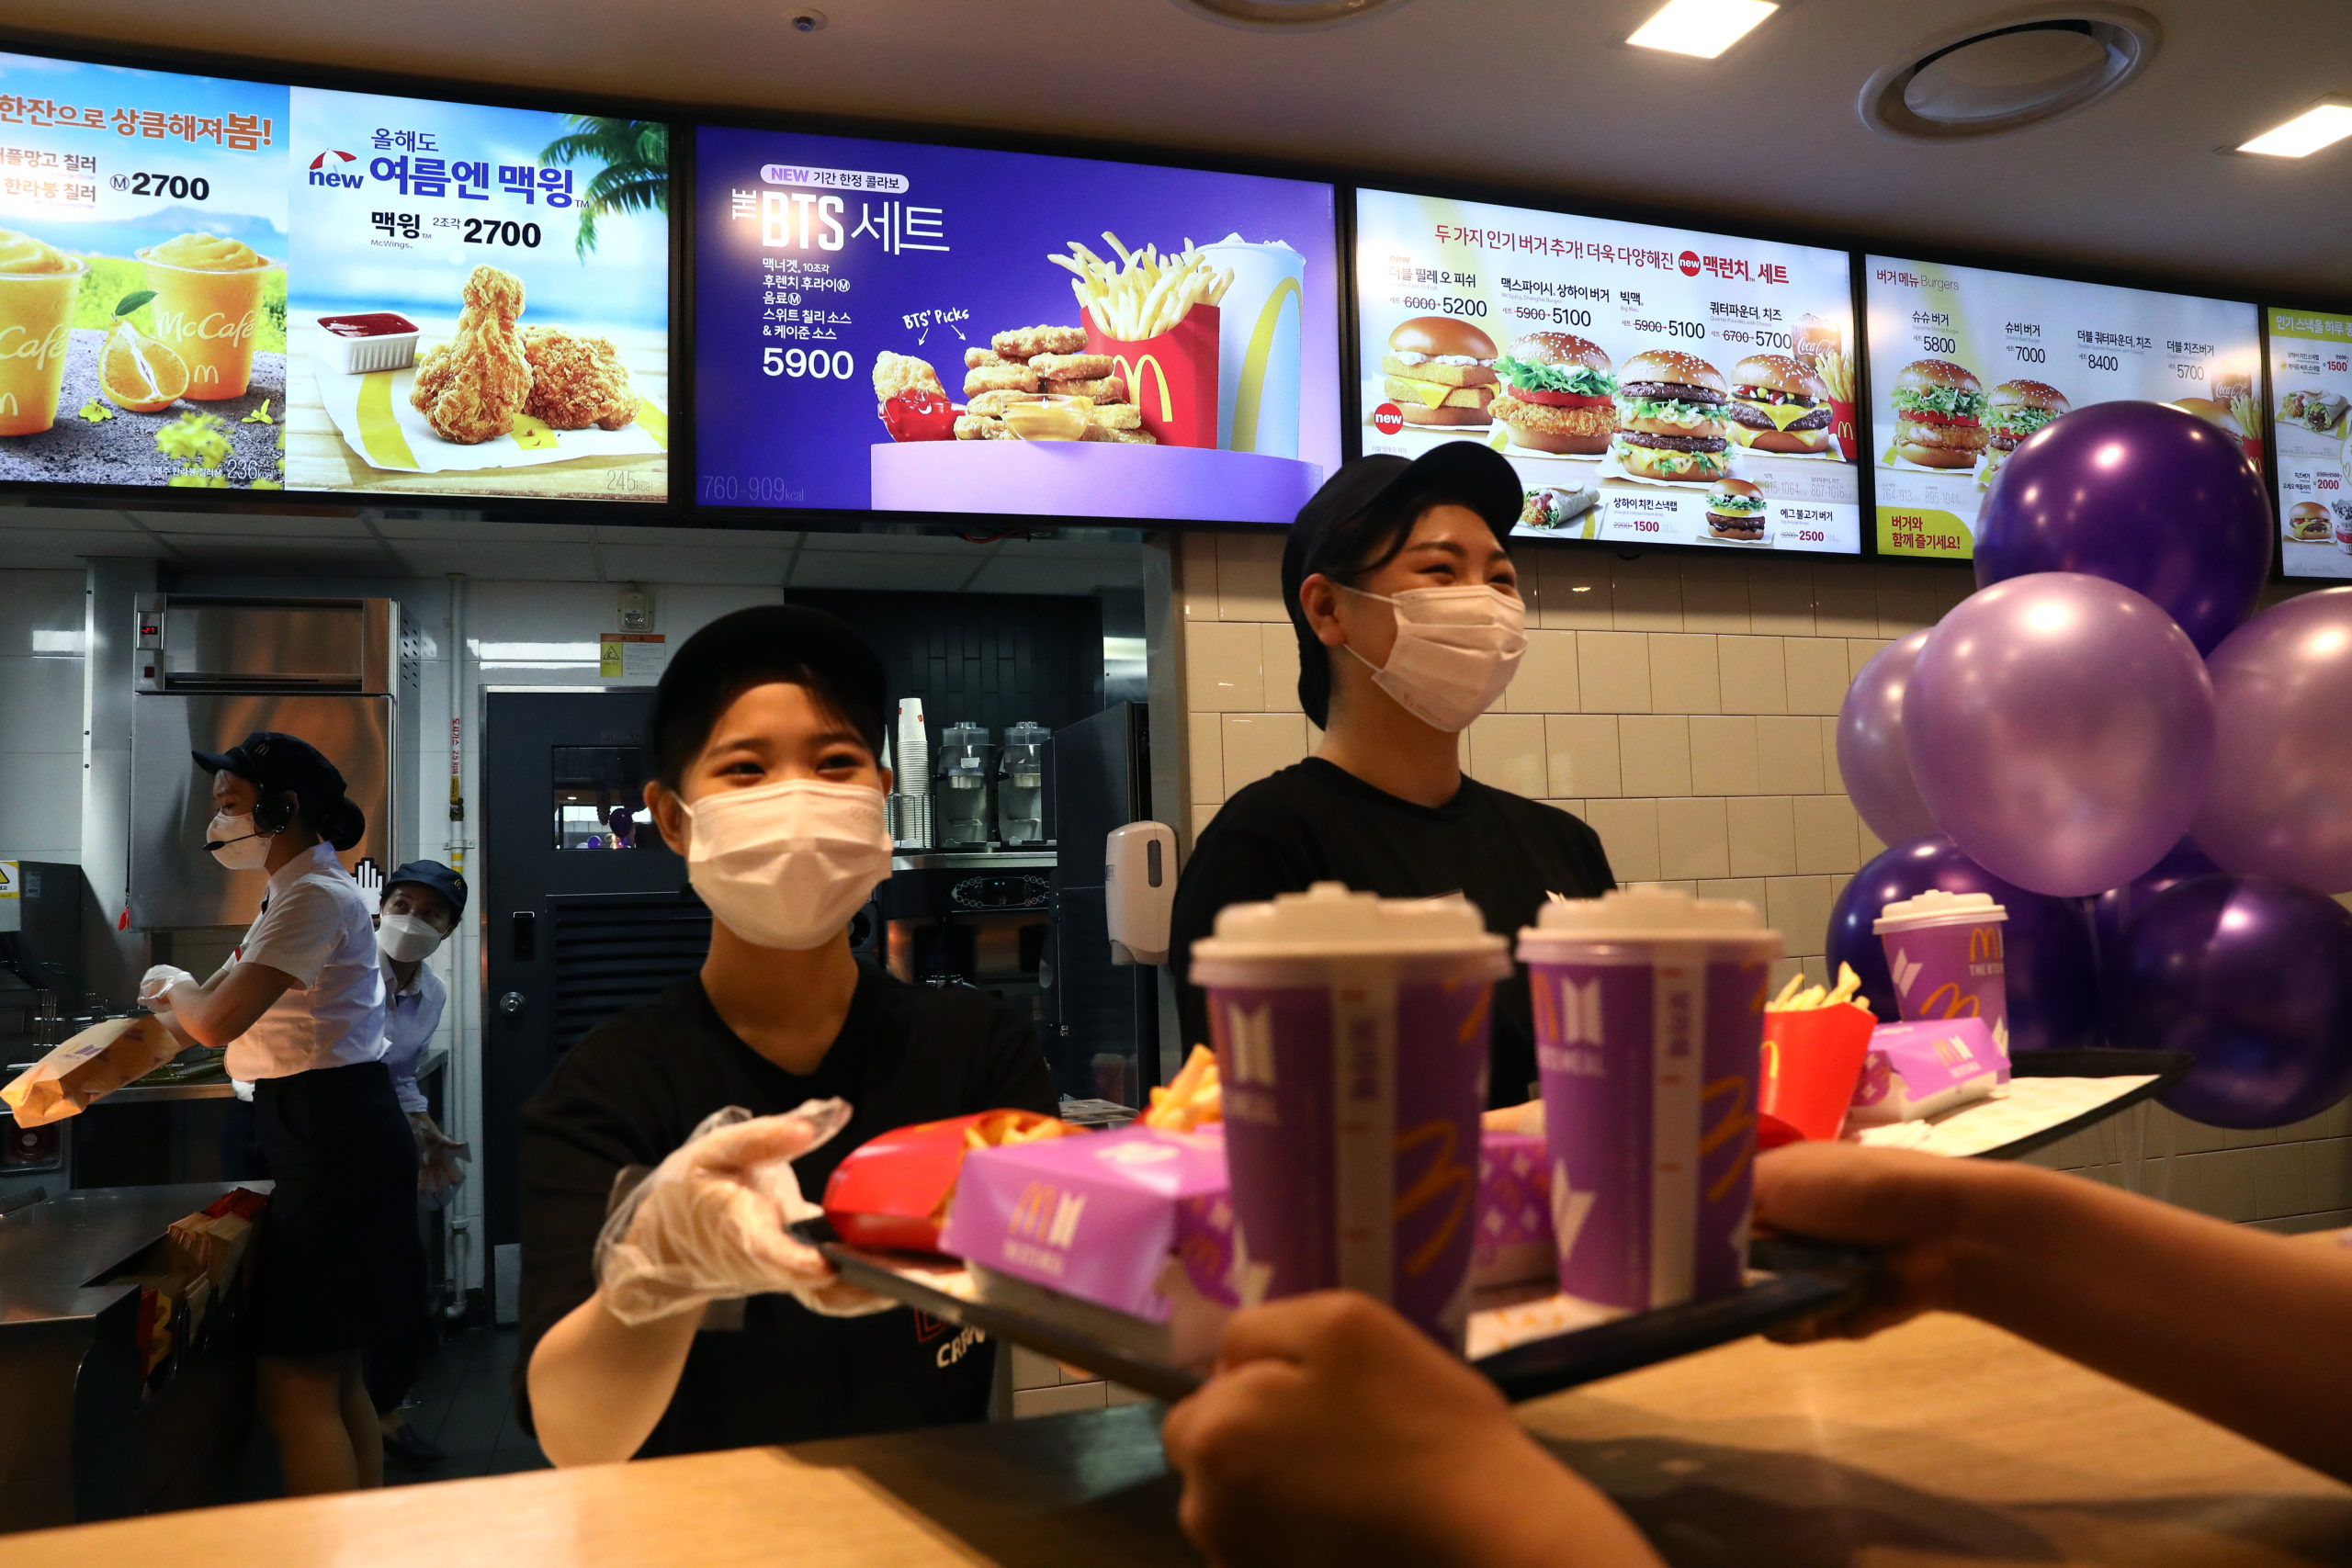 McDonald's employees serve a meal on May 27 in Seoul, South Korea. (Chung Sung-Jun/Getty Images)